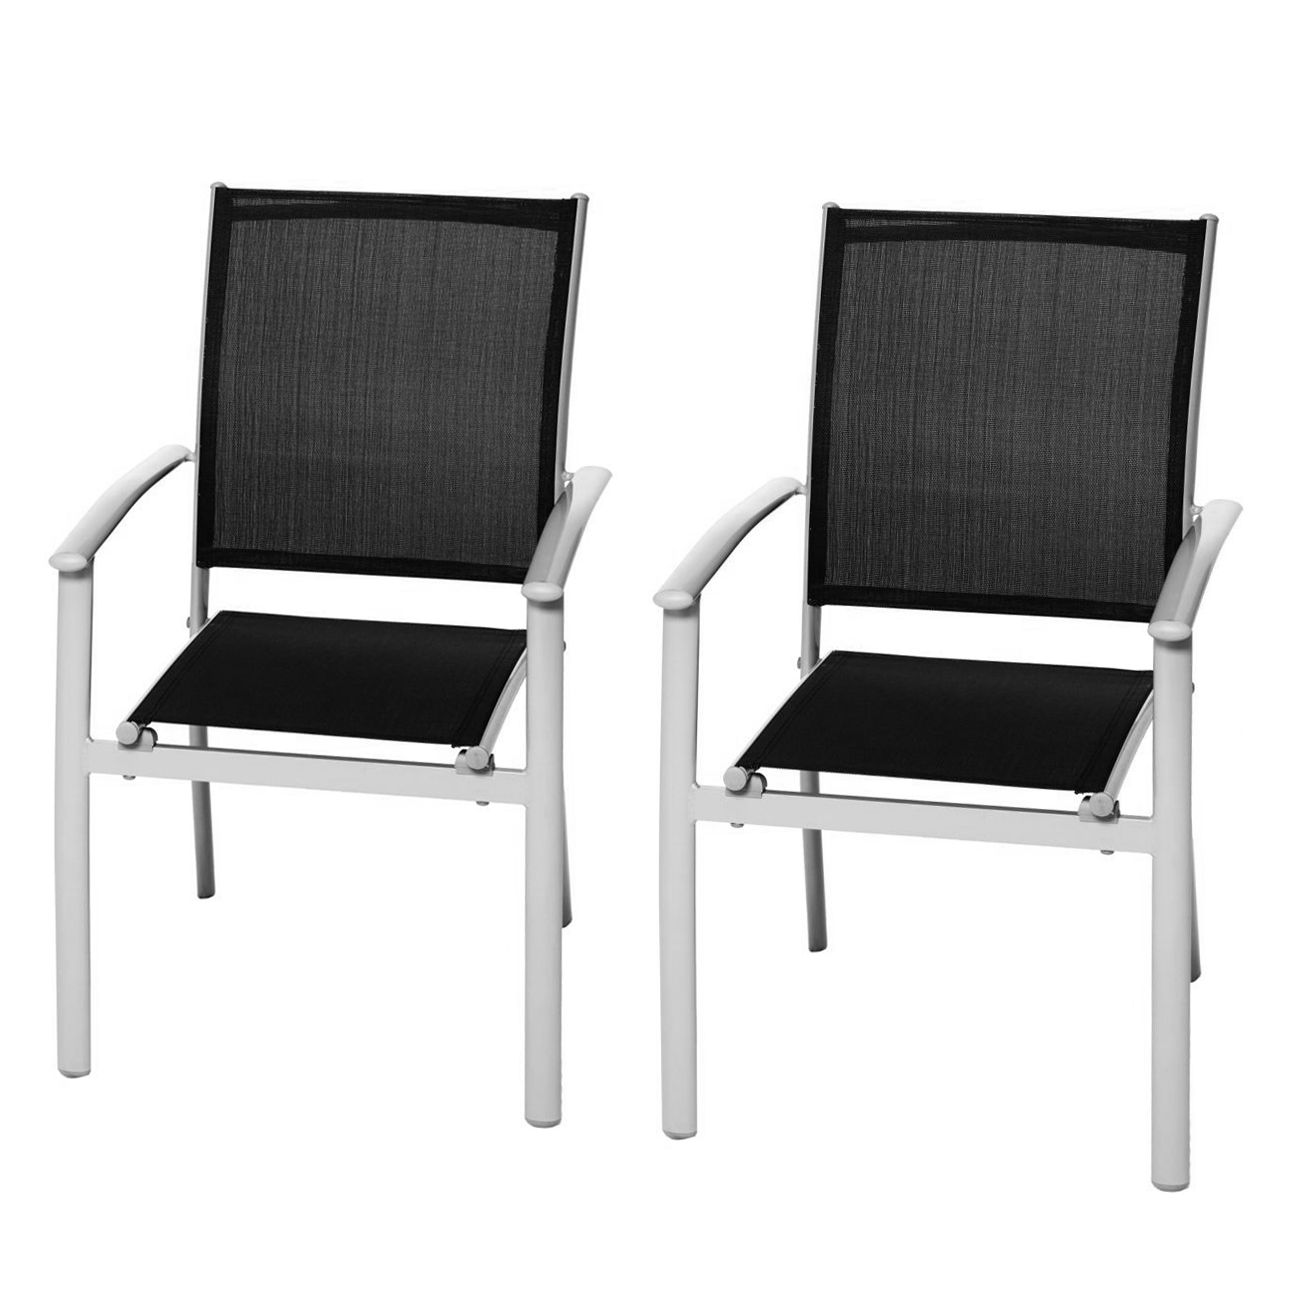 stapelstuhl milano klassik 2er set aluminium schwarz merxx jetzt kaufen. Black Bedroom Furniture Sets. Home Design Ideas